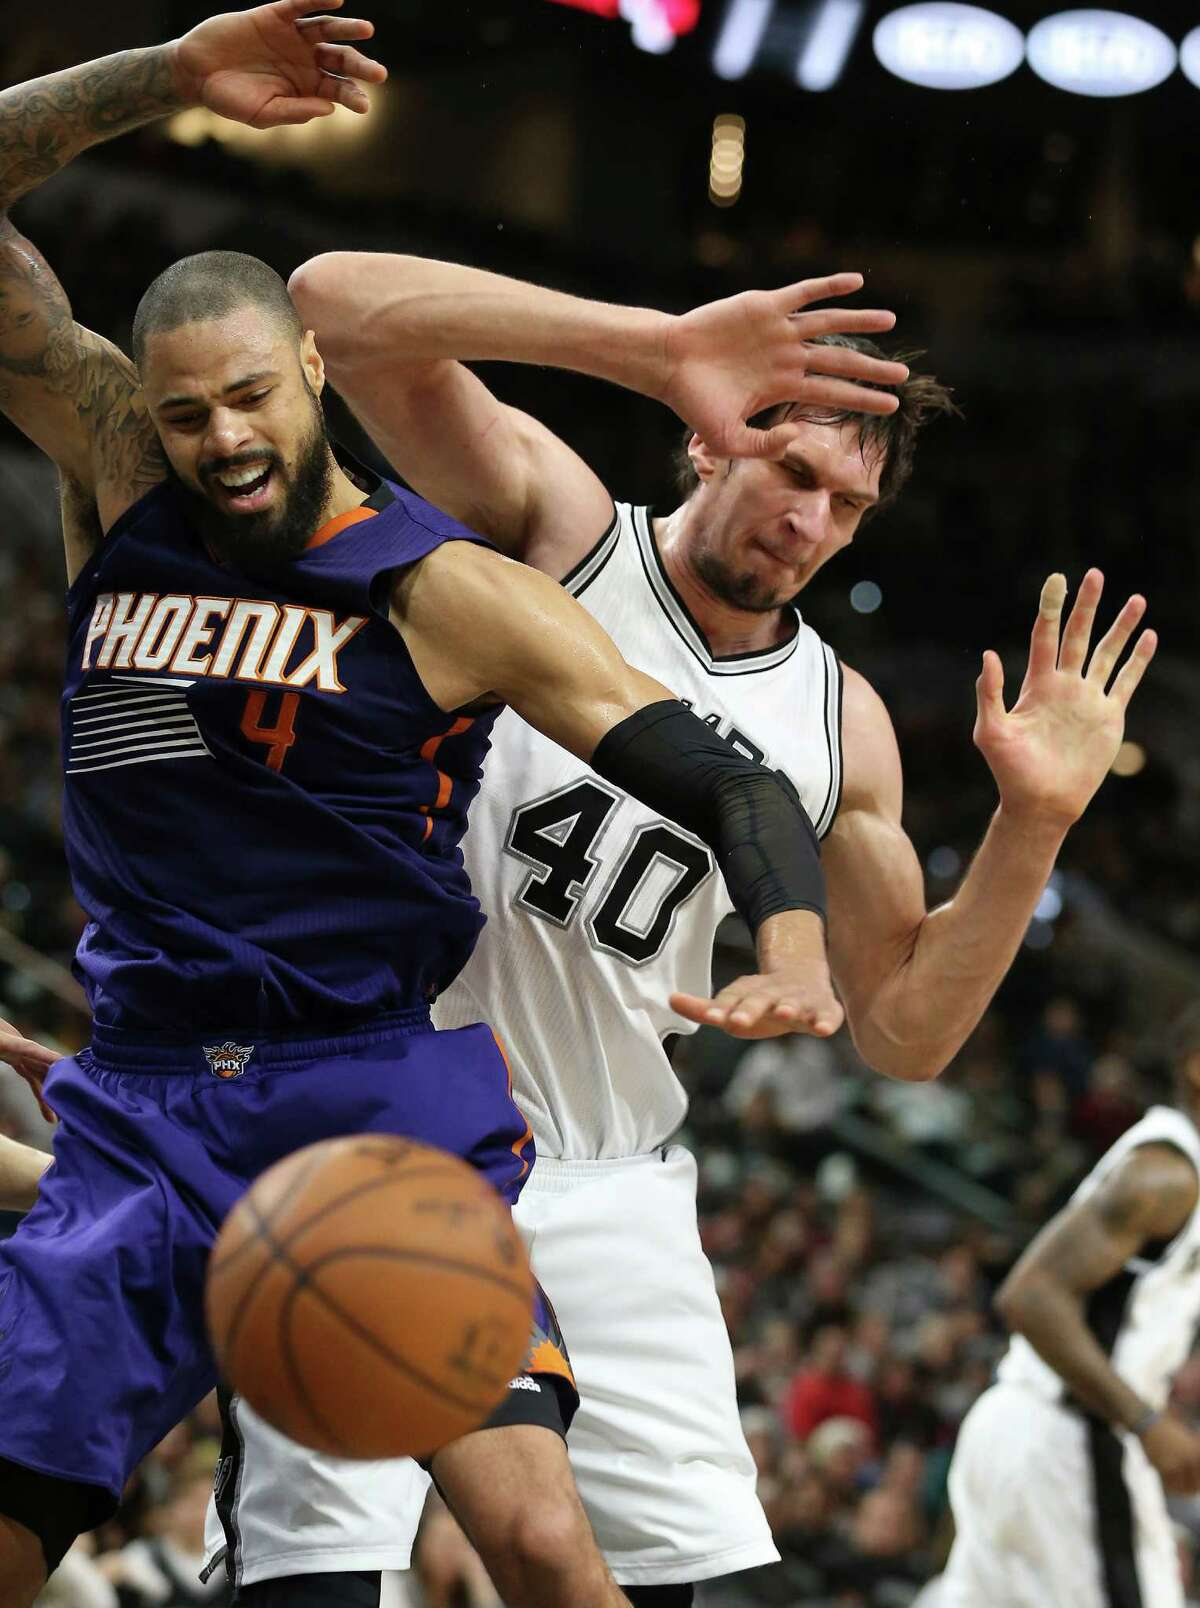 Boban Marjanovic makes it hard for Tyson Chandler to post low as the Spurs host the Suns at the AT&T Center on December 30, 2015.